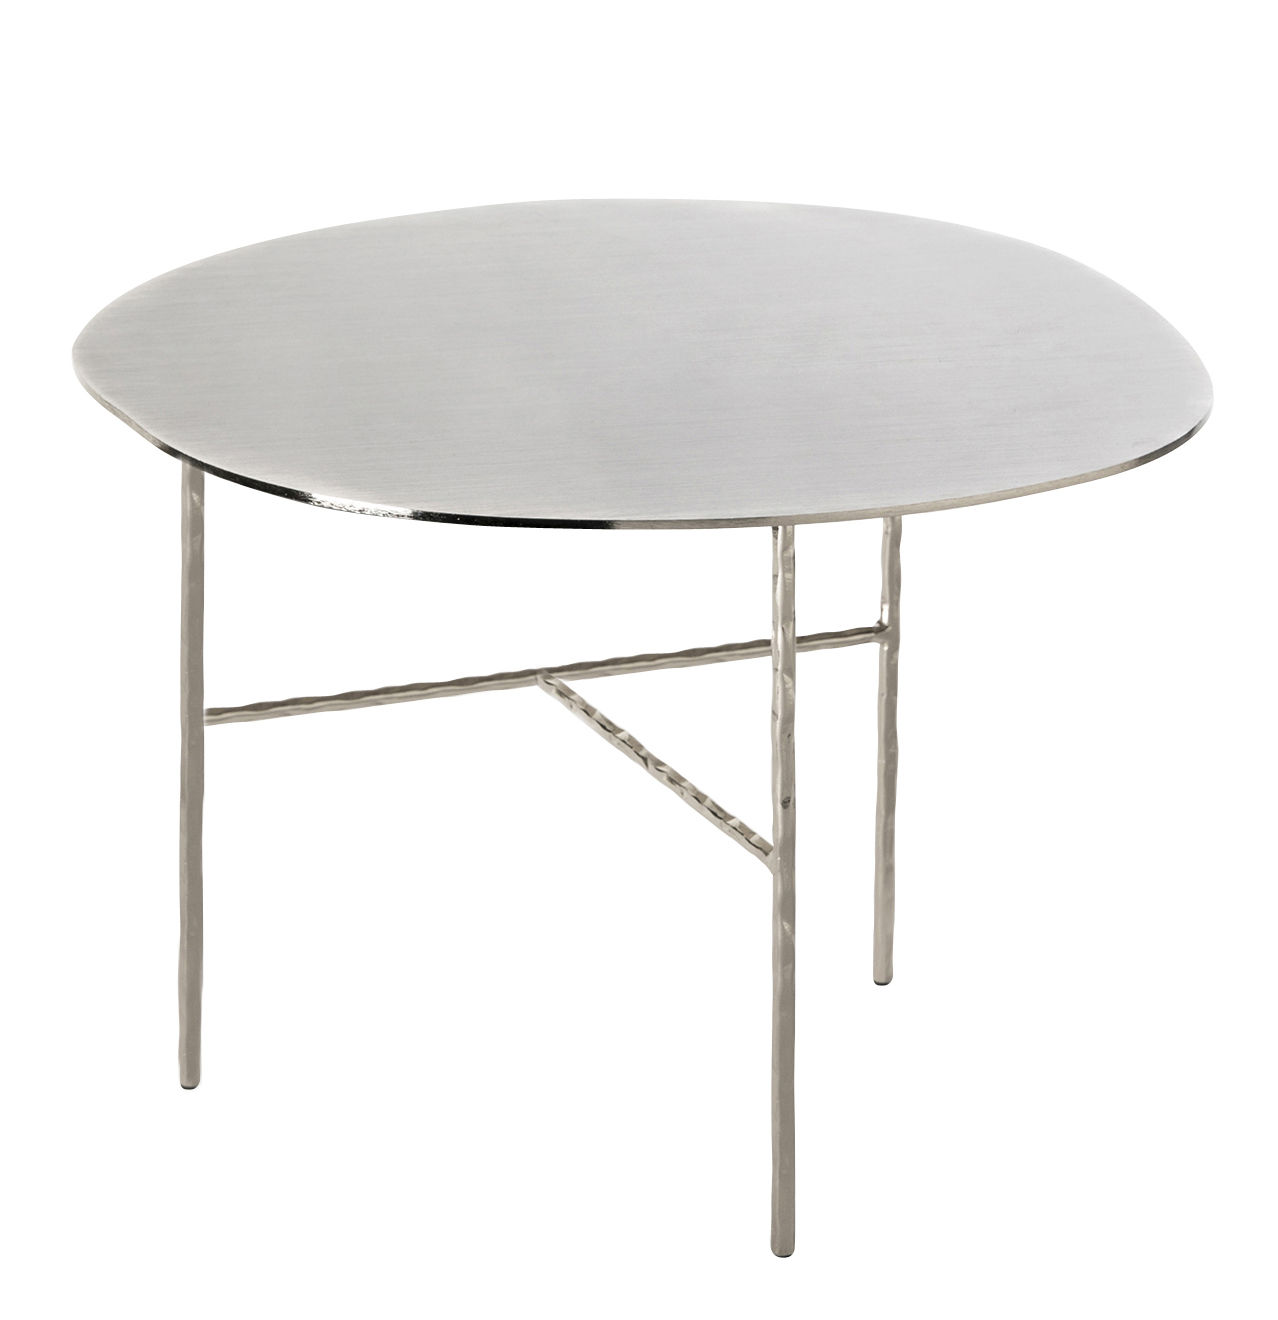 Furniture - Coffee Tables - XXX Large Coffee table - / Ø 52 x H 38 cm by Opinion Ciatti - Nickel - Galvanised  nickel, Wrought iron